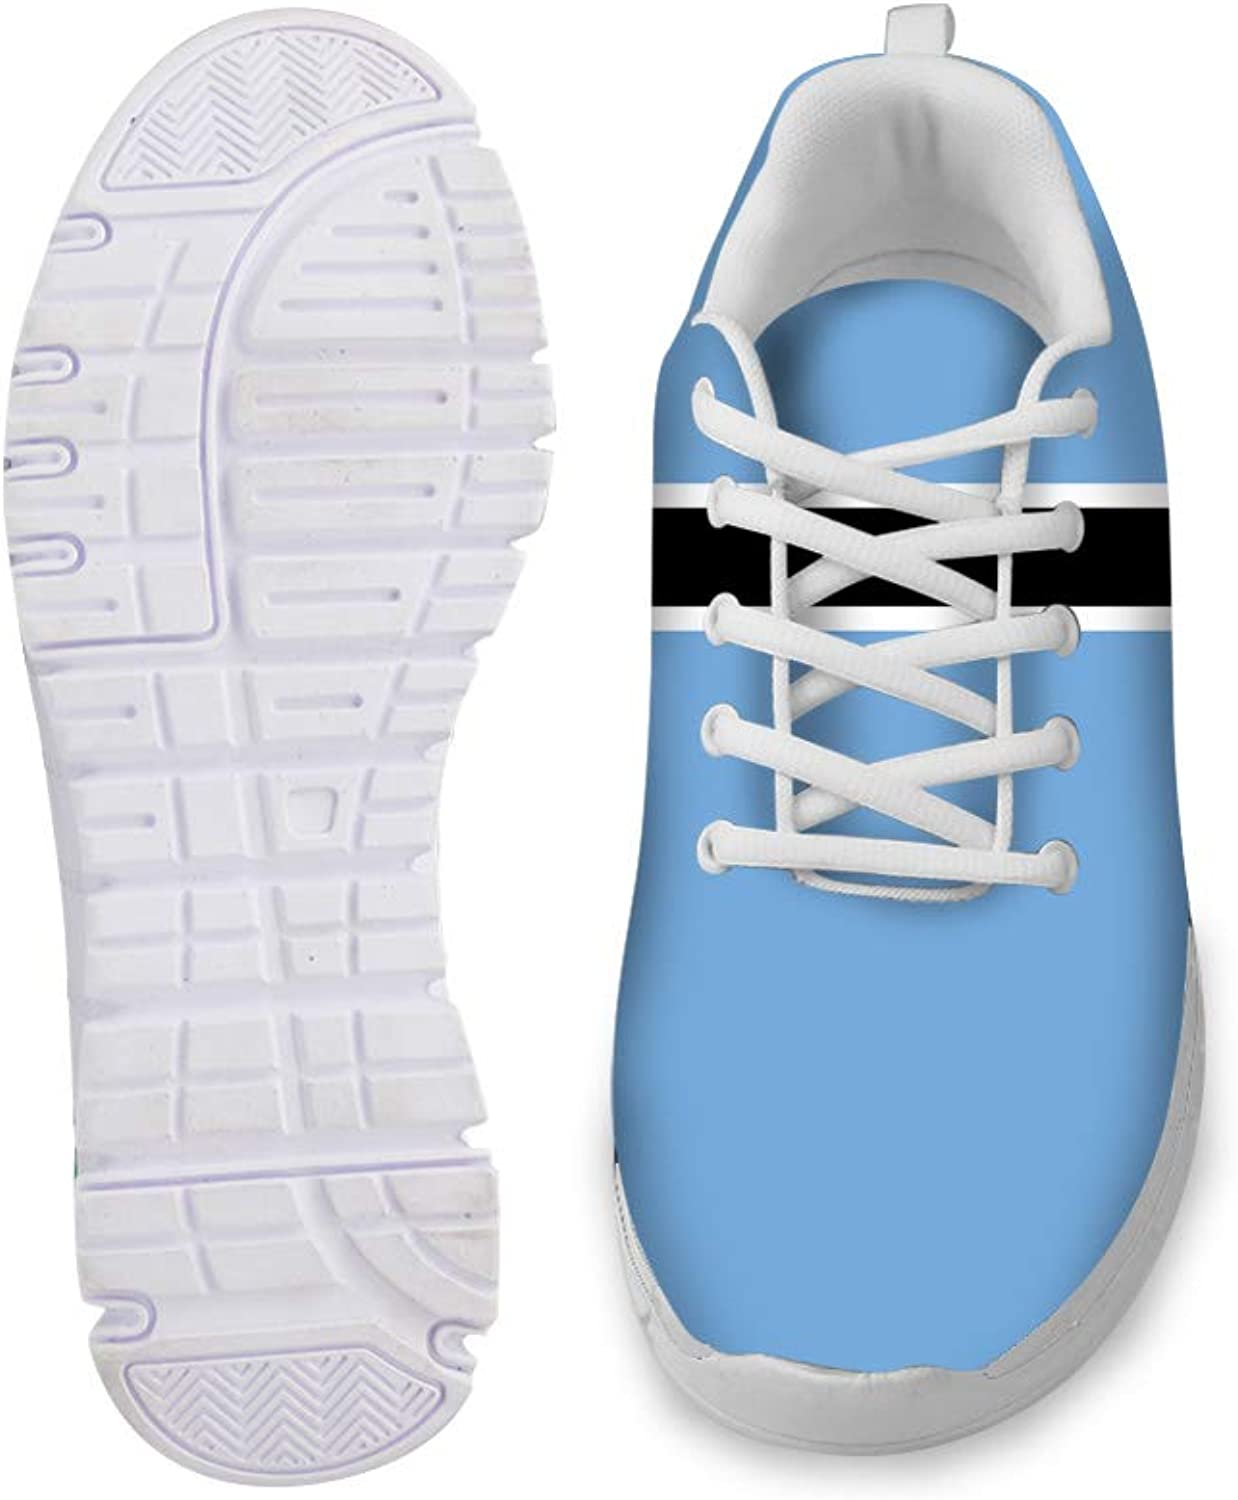 Owaheson Lace-up Sneaker Training shoes Mens Womens Botswana Flag